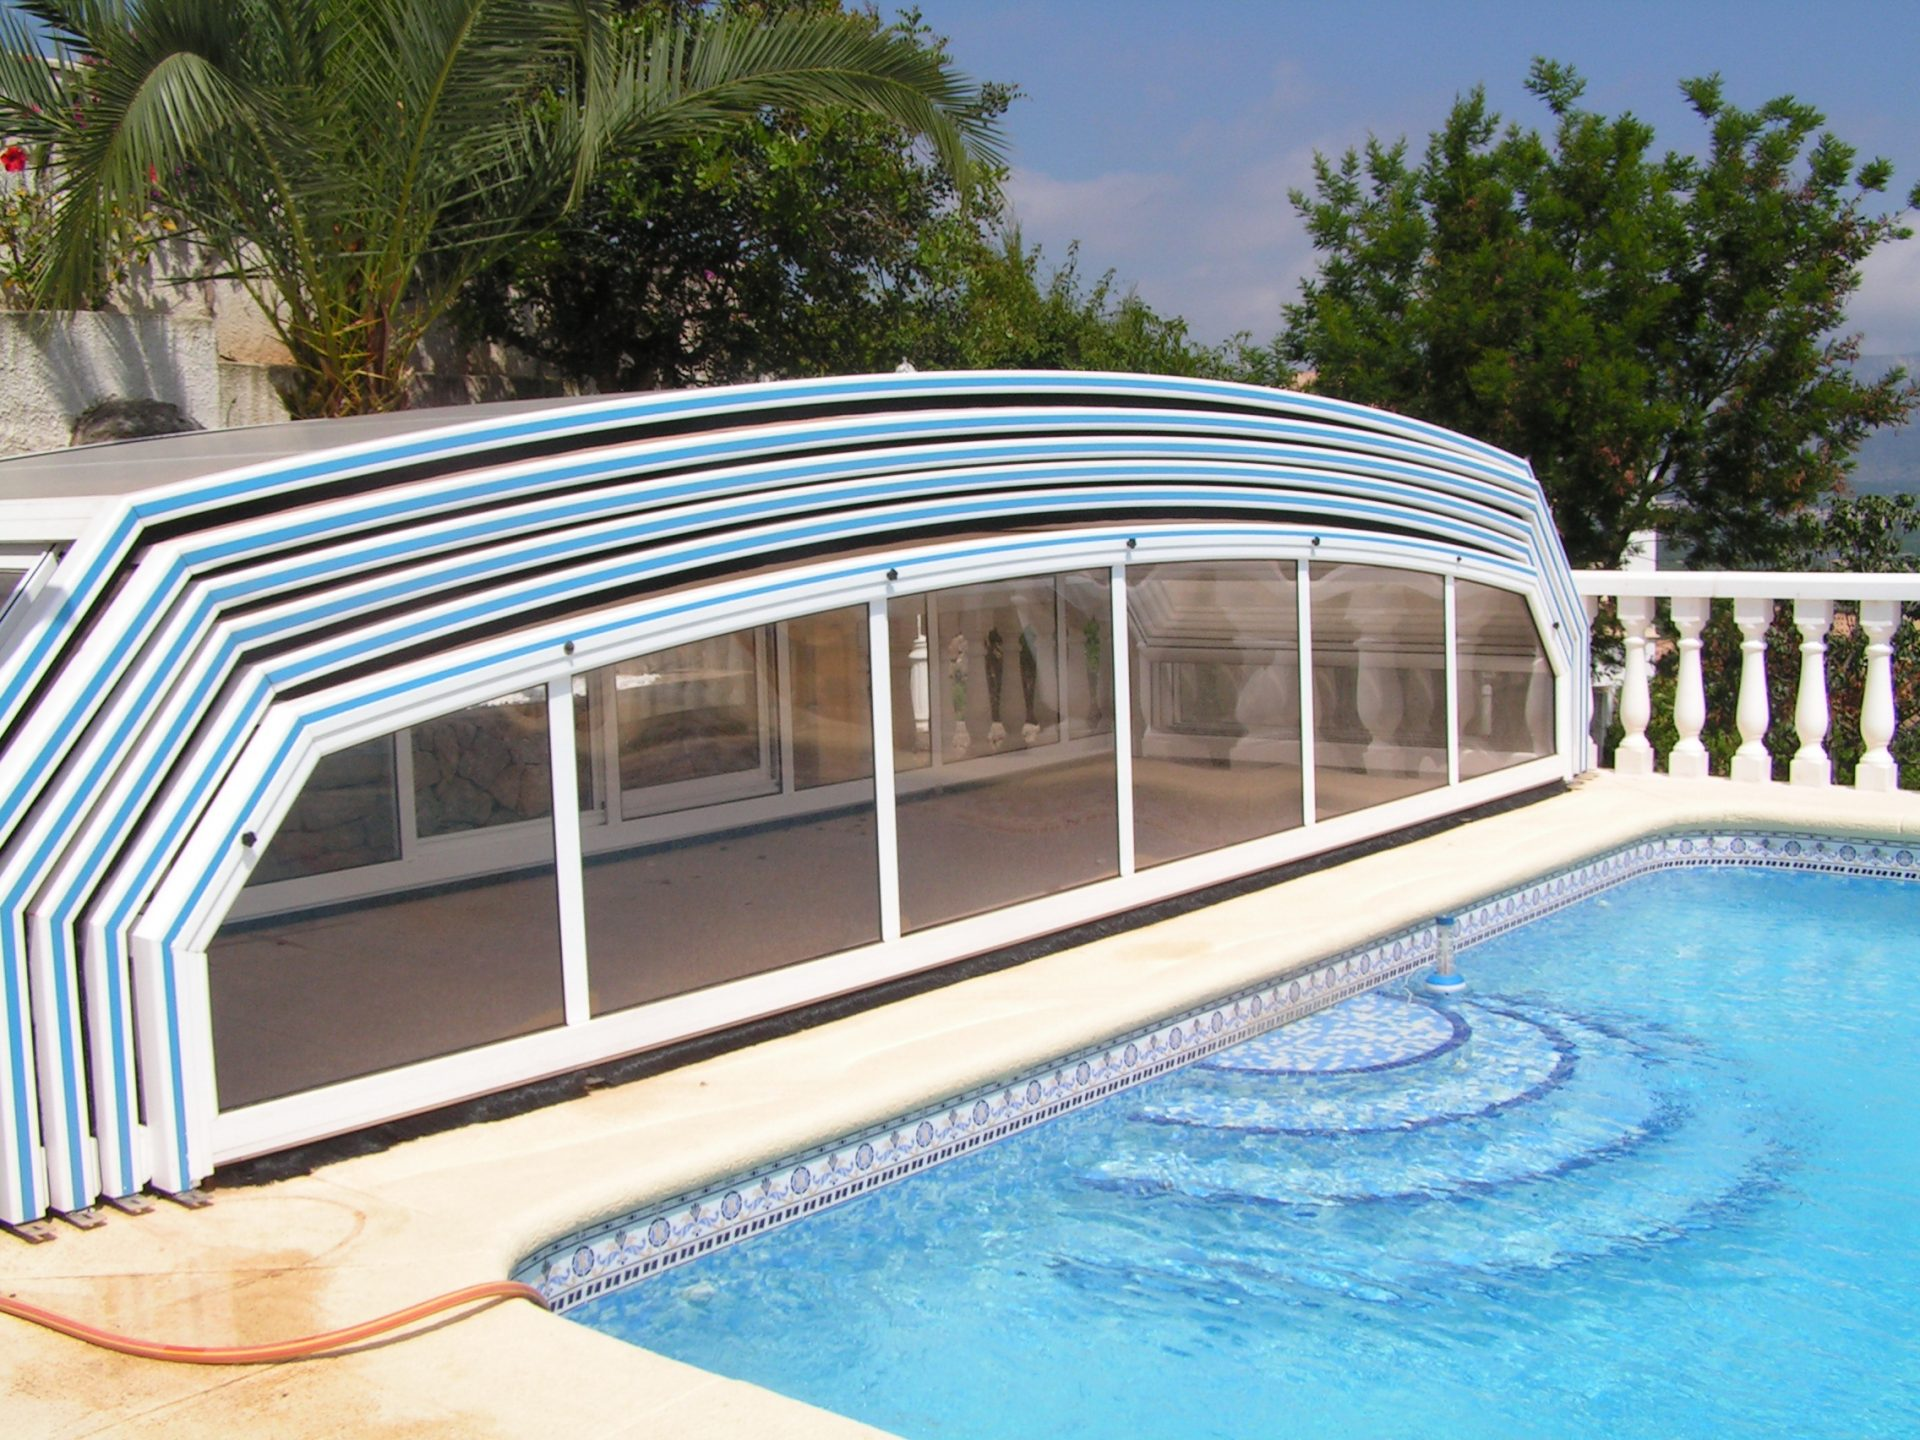 Abri piscine paris t lescopique sur roulette for Modele de piscine